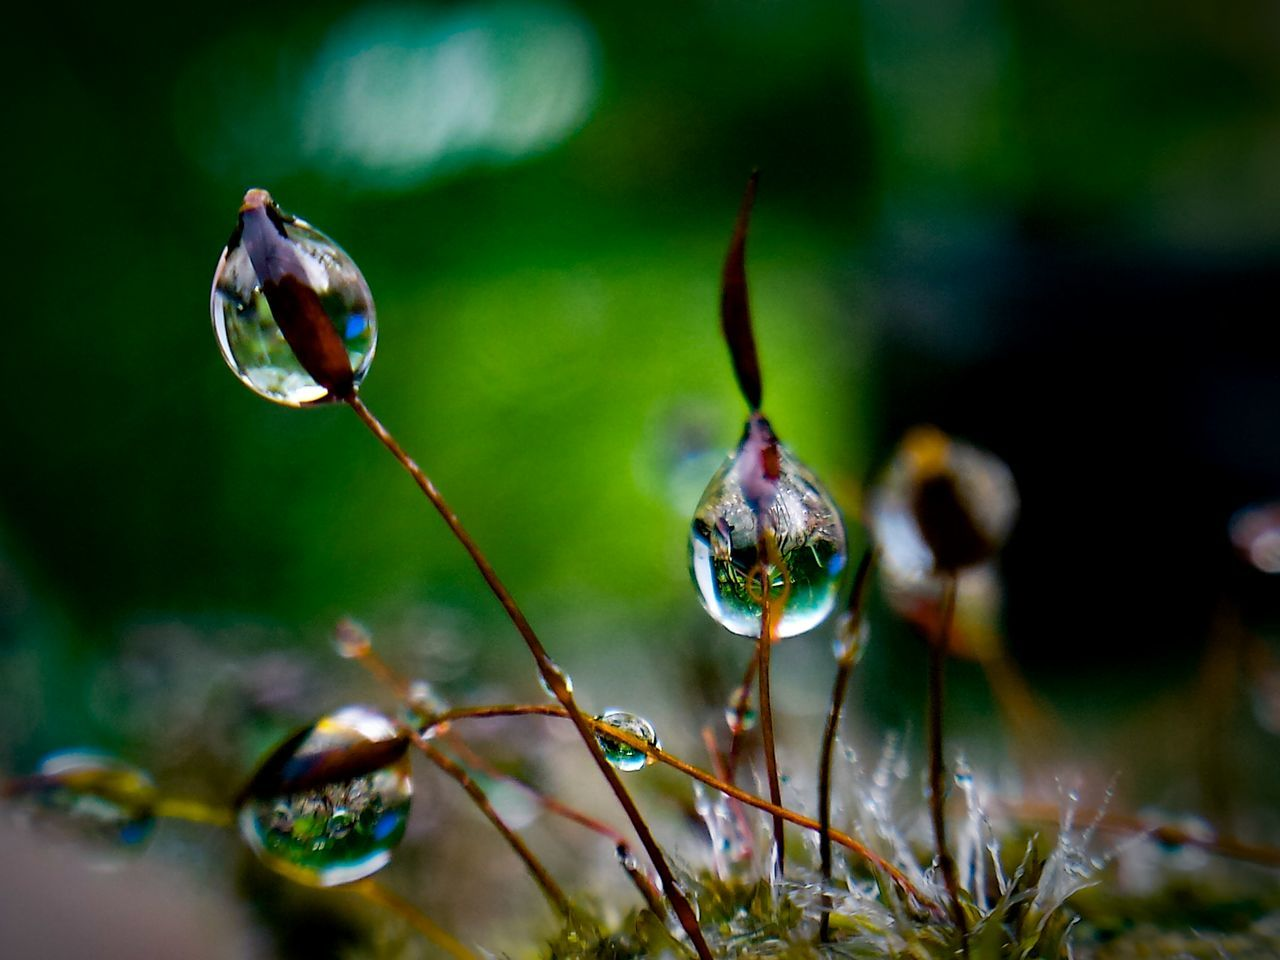 Gardenmicrocosm Microcosm Moss Nature Nature_collection Beauty In Nature Macro_perfection Close-up Focus On Foreground Getting Creative EyeEm Masterclass Capture The Moment EyeEm EyeEm Gallery From My Point Of View Eye4photography  EyeEm Best Shots Drop Droplets Drops_perfection Water